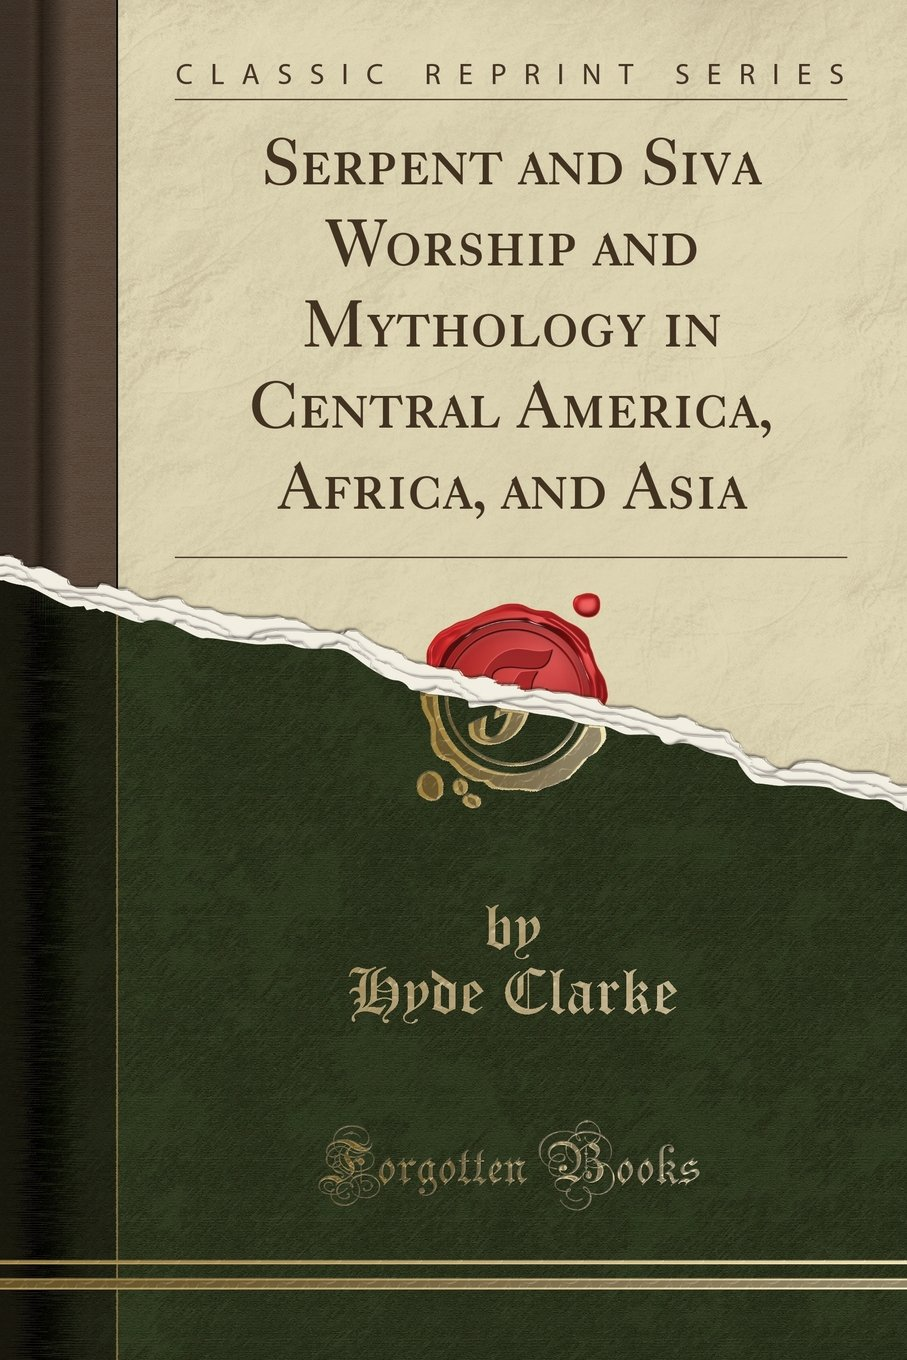 Serpent and Siva Worship and Mythology in Central America, Africa, and Asia (Classic Reprint) ebook